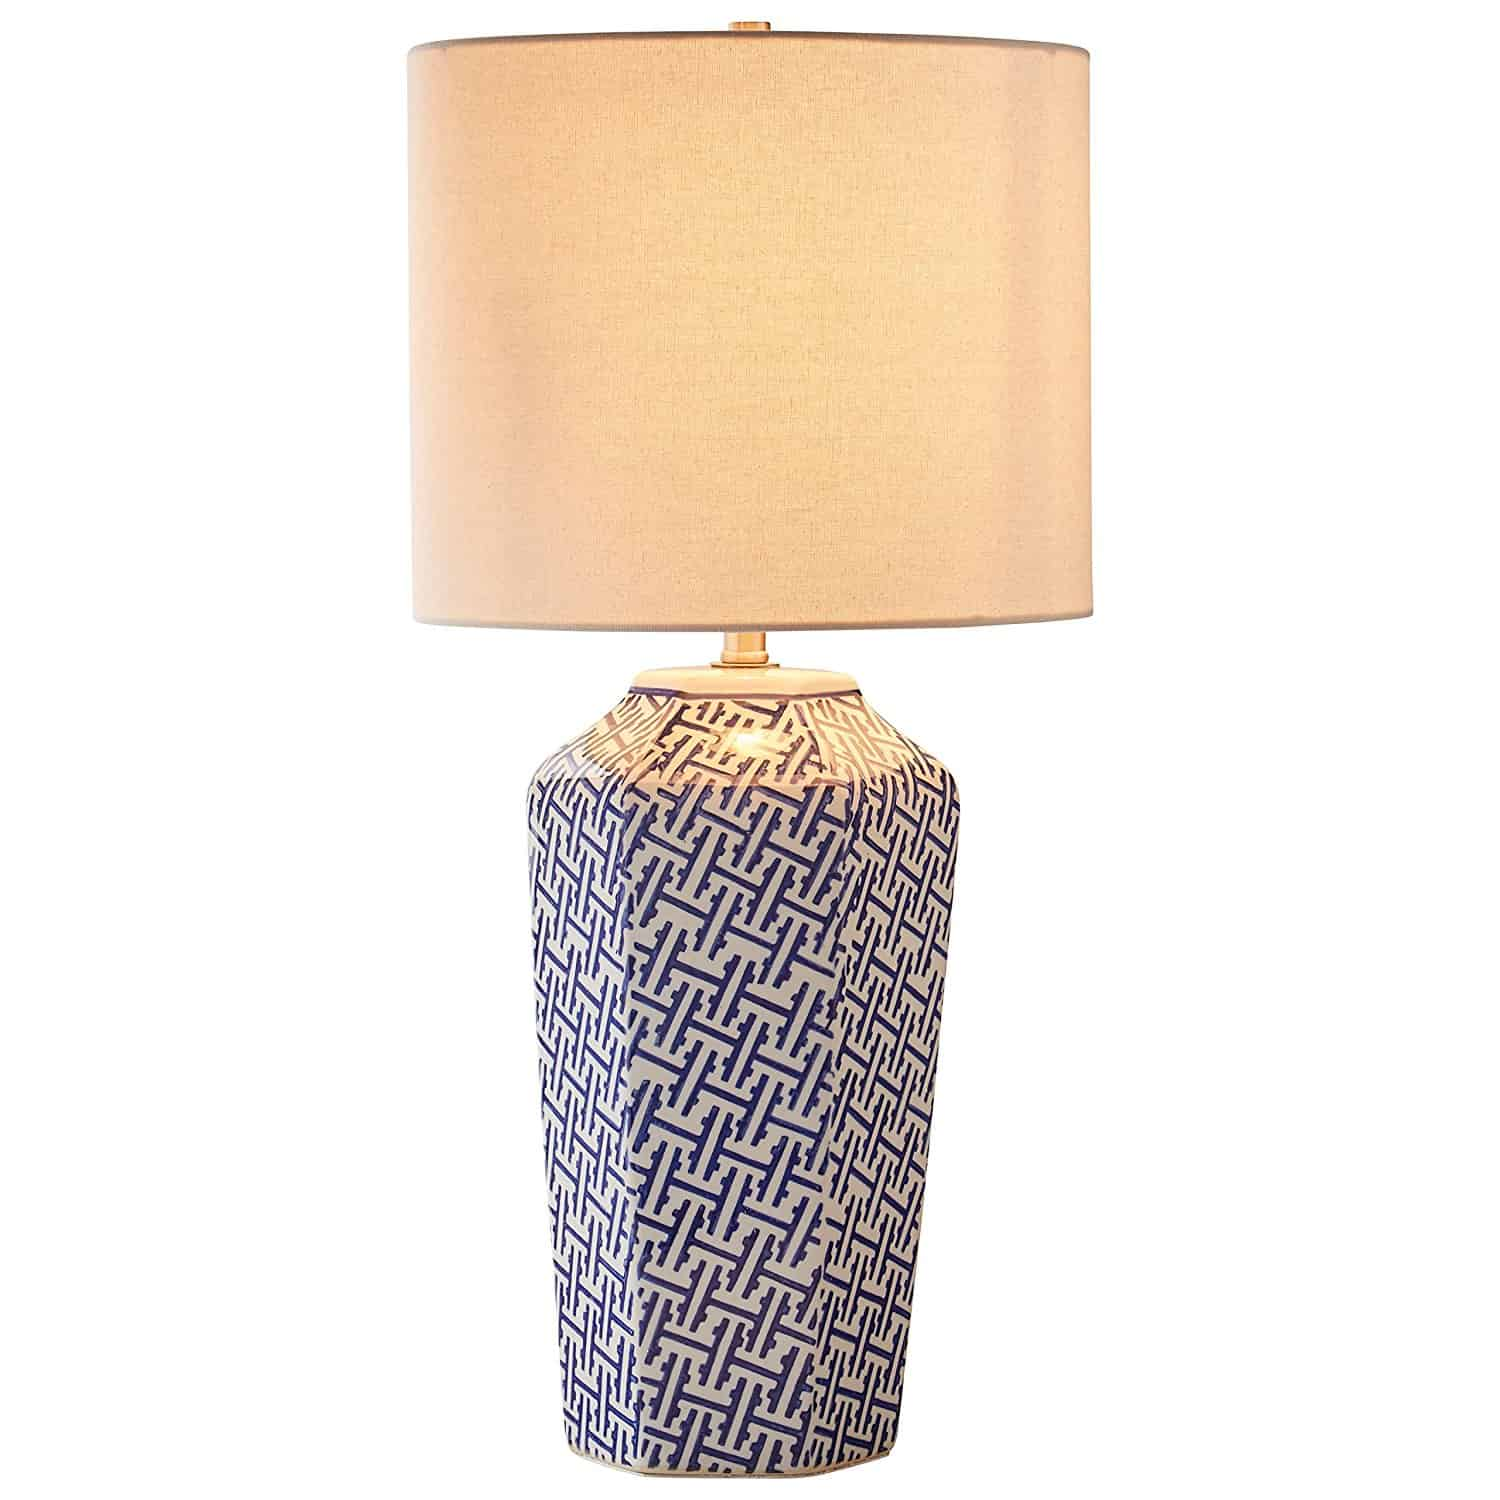 Stone & Beam Geo Pattern Ceramic Lamp